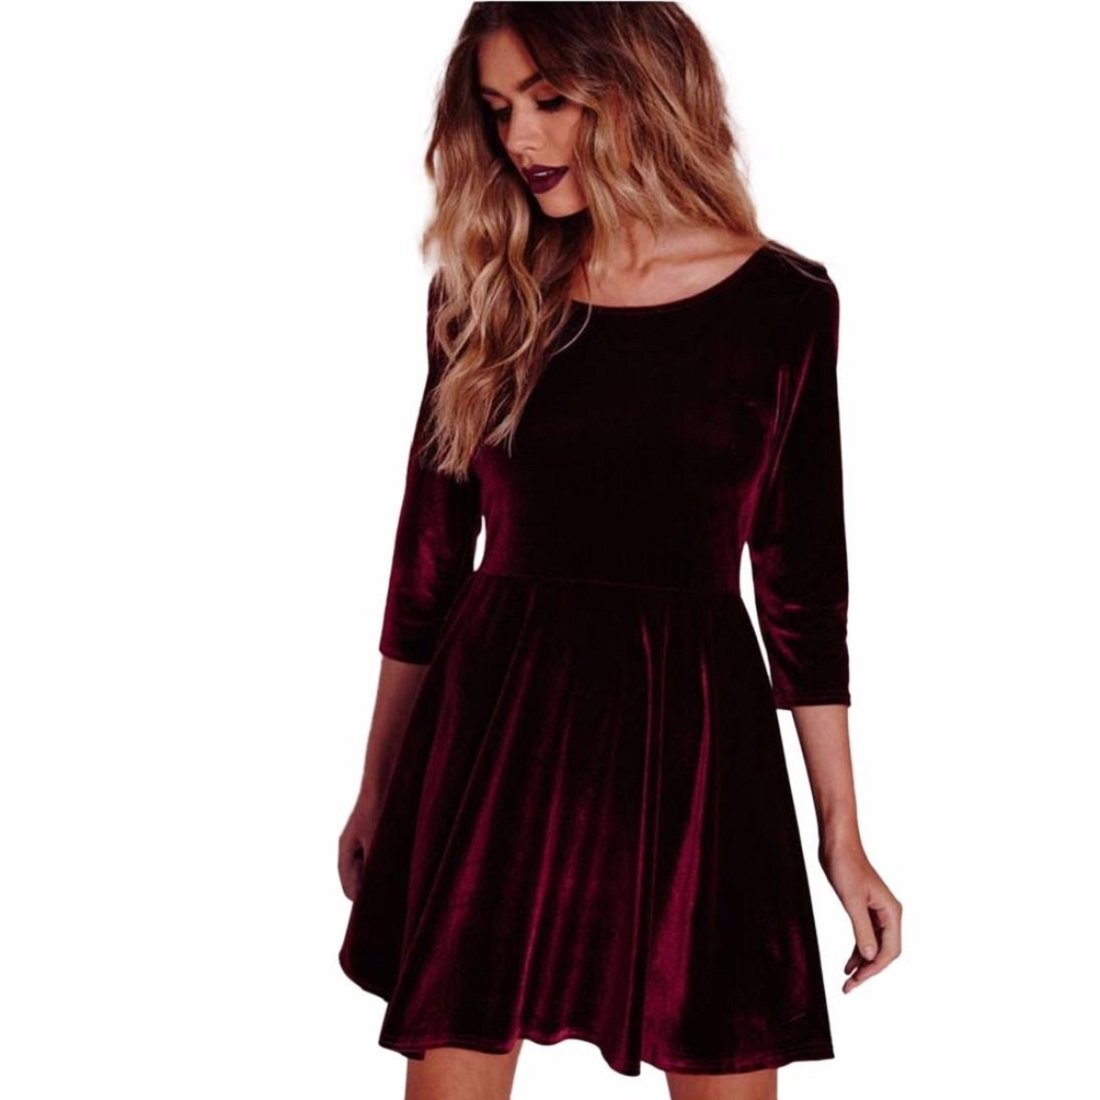 GONKOMA Women Dress Round Neck Velvet Dress Three-Quarters Sleeve Dress XWJ520